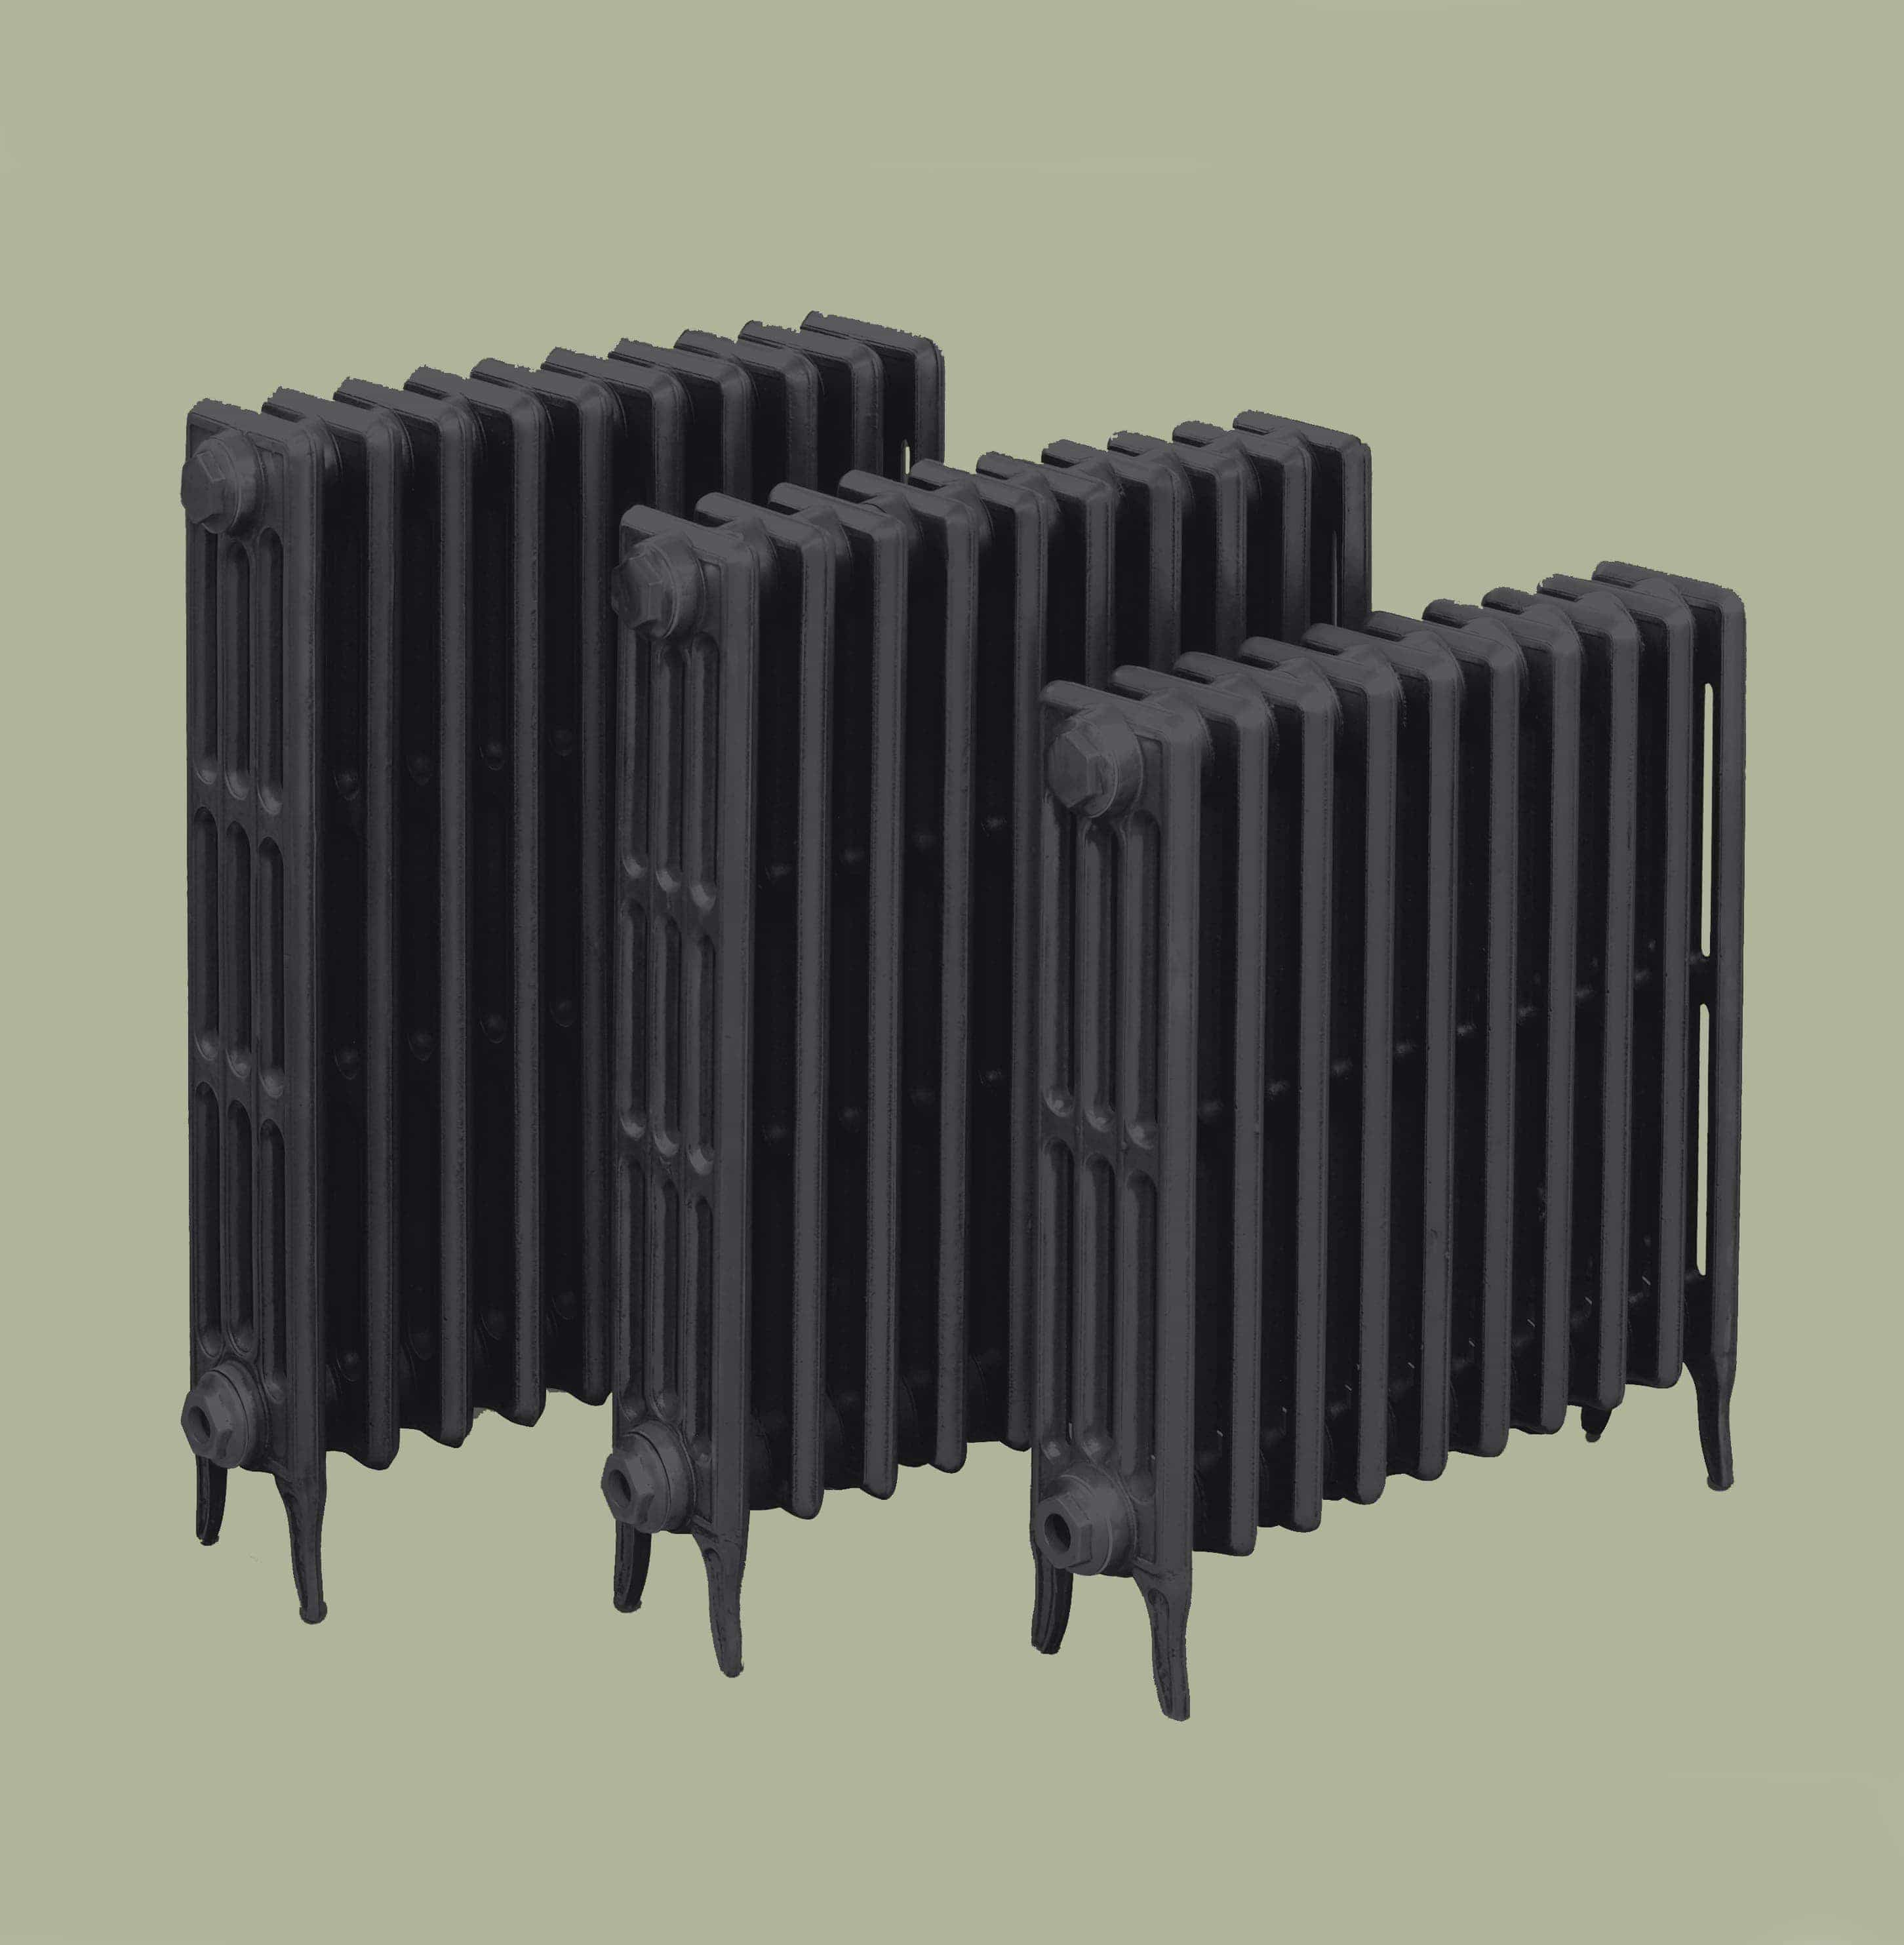 Victorian 4 Cast Iron Radiators (460mm to 760mm high)